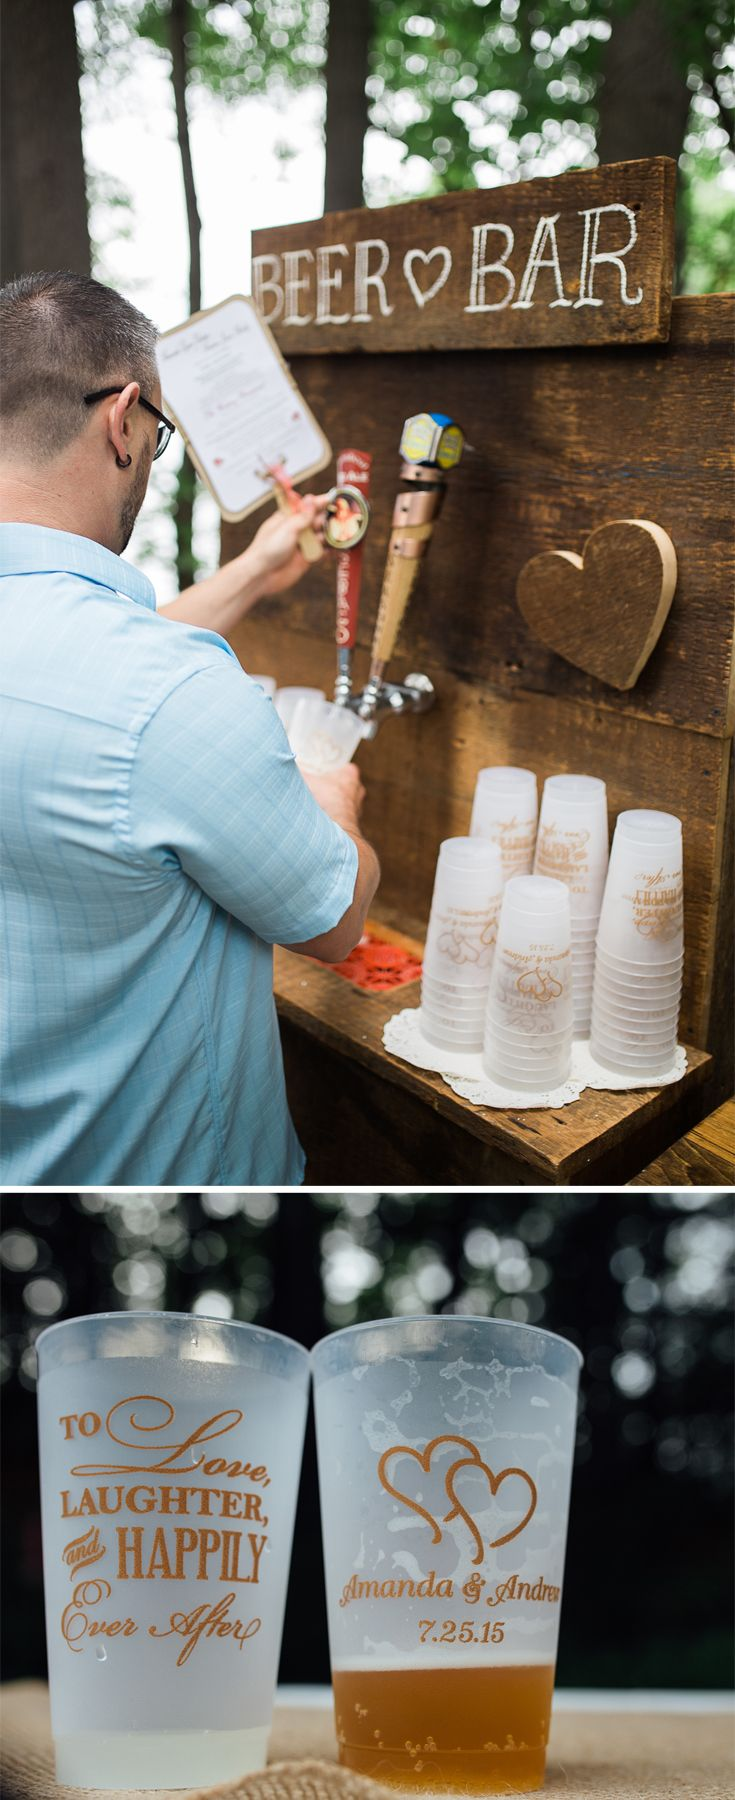 For their rustic DIY outdoor wedding reception, Amanda and Brian created a beer bar drink station complete with 24 ounce frosted shatterproof cups personalized with  the wedding design 'To Love, Laughter and Happily Ever After' on one side and their names and wedding date on the other side. Thanks to http://timebandit-photography.com for the wonderful photos. These personalized 24 ounce wedding cups can be ordered at…